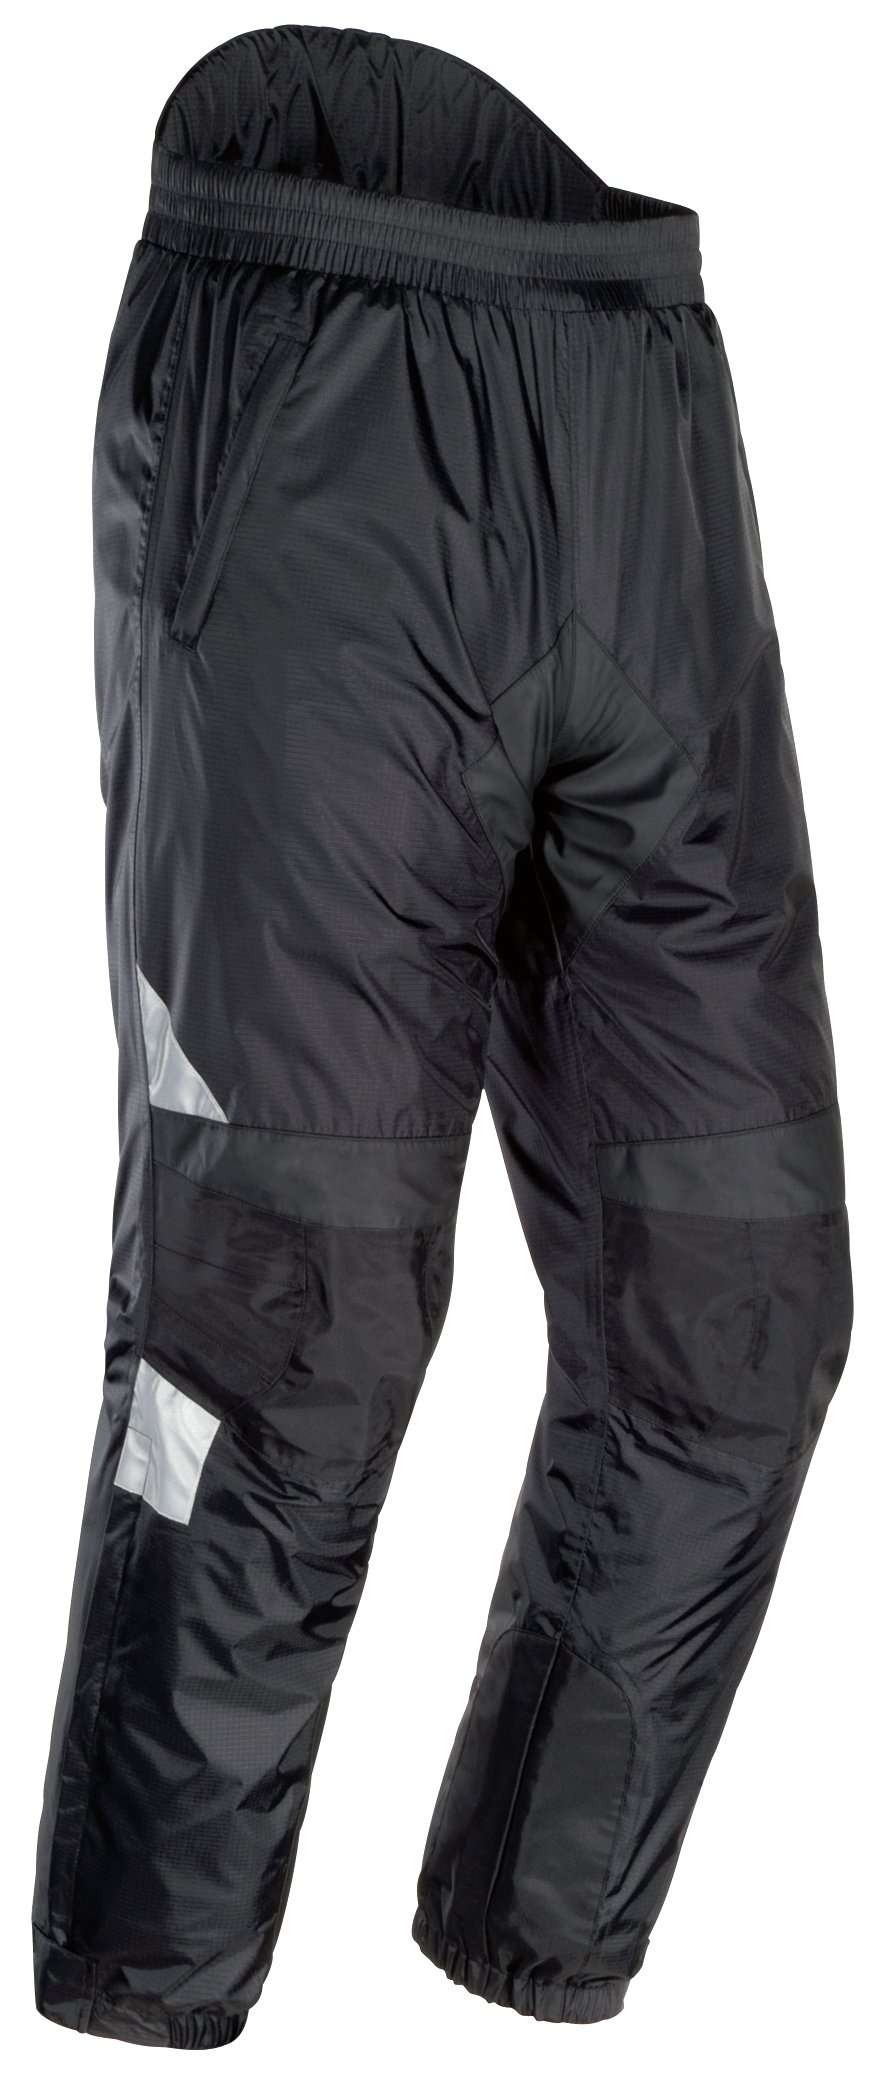 Tourmaster Mens Sentinel Black Rainsuit Pants - 4X-Large by Tourmaster (Image #1)